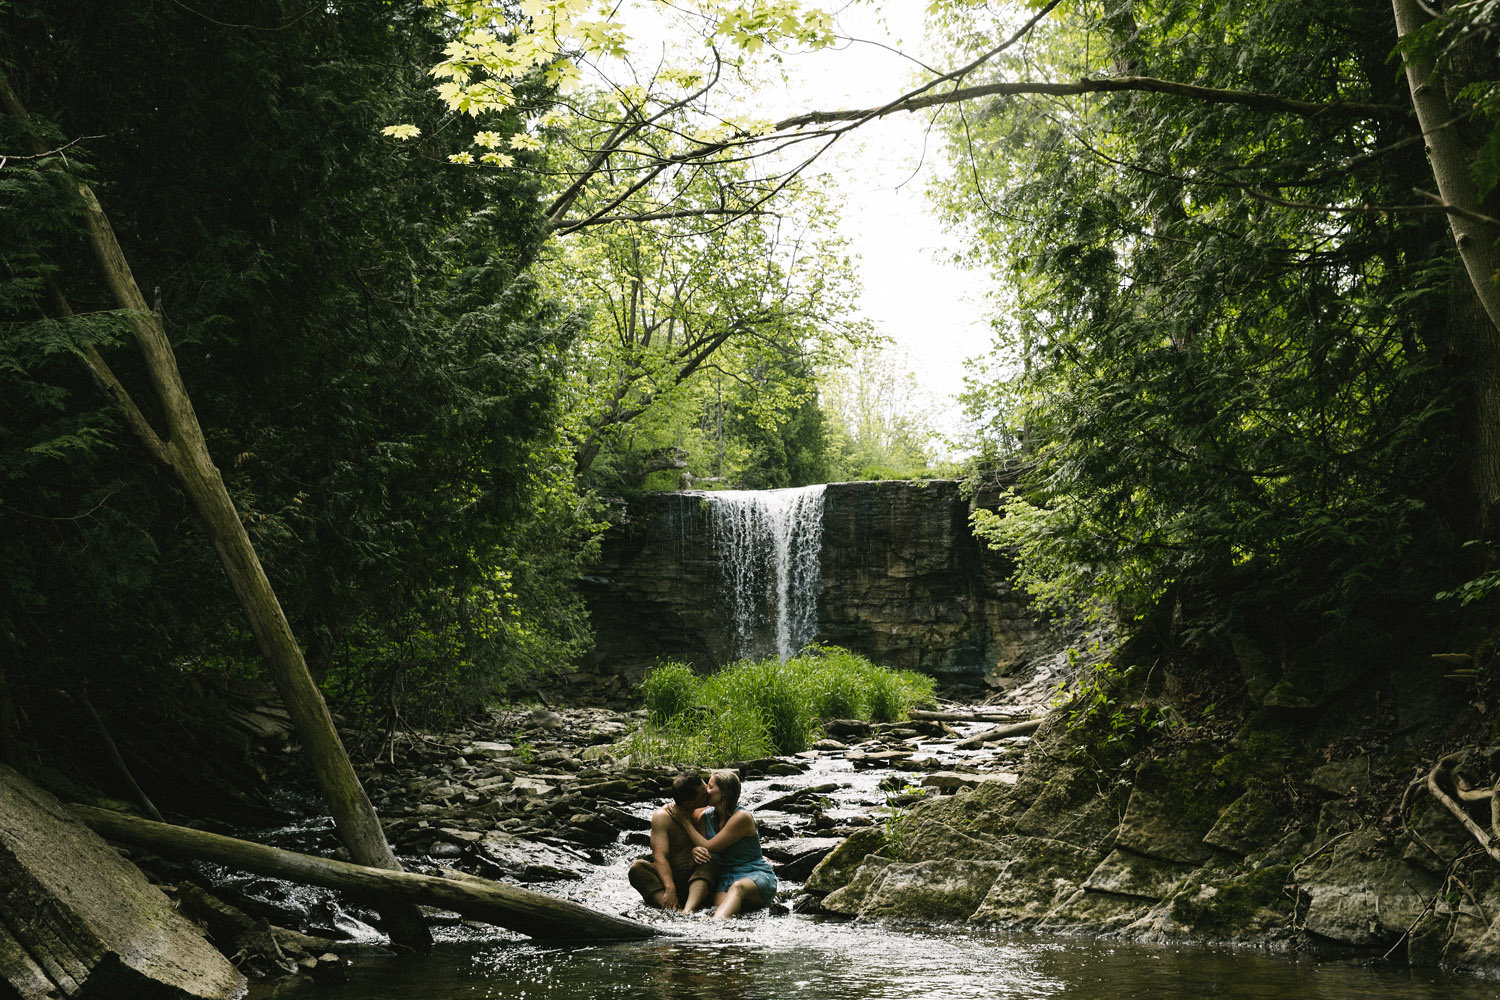 234-WaterfallEngagementSession.jpg